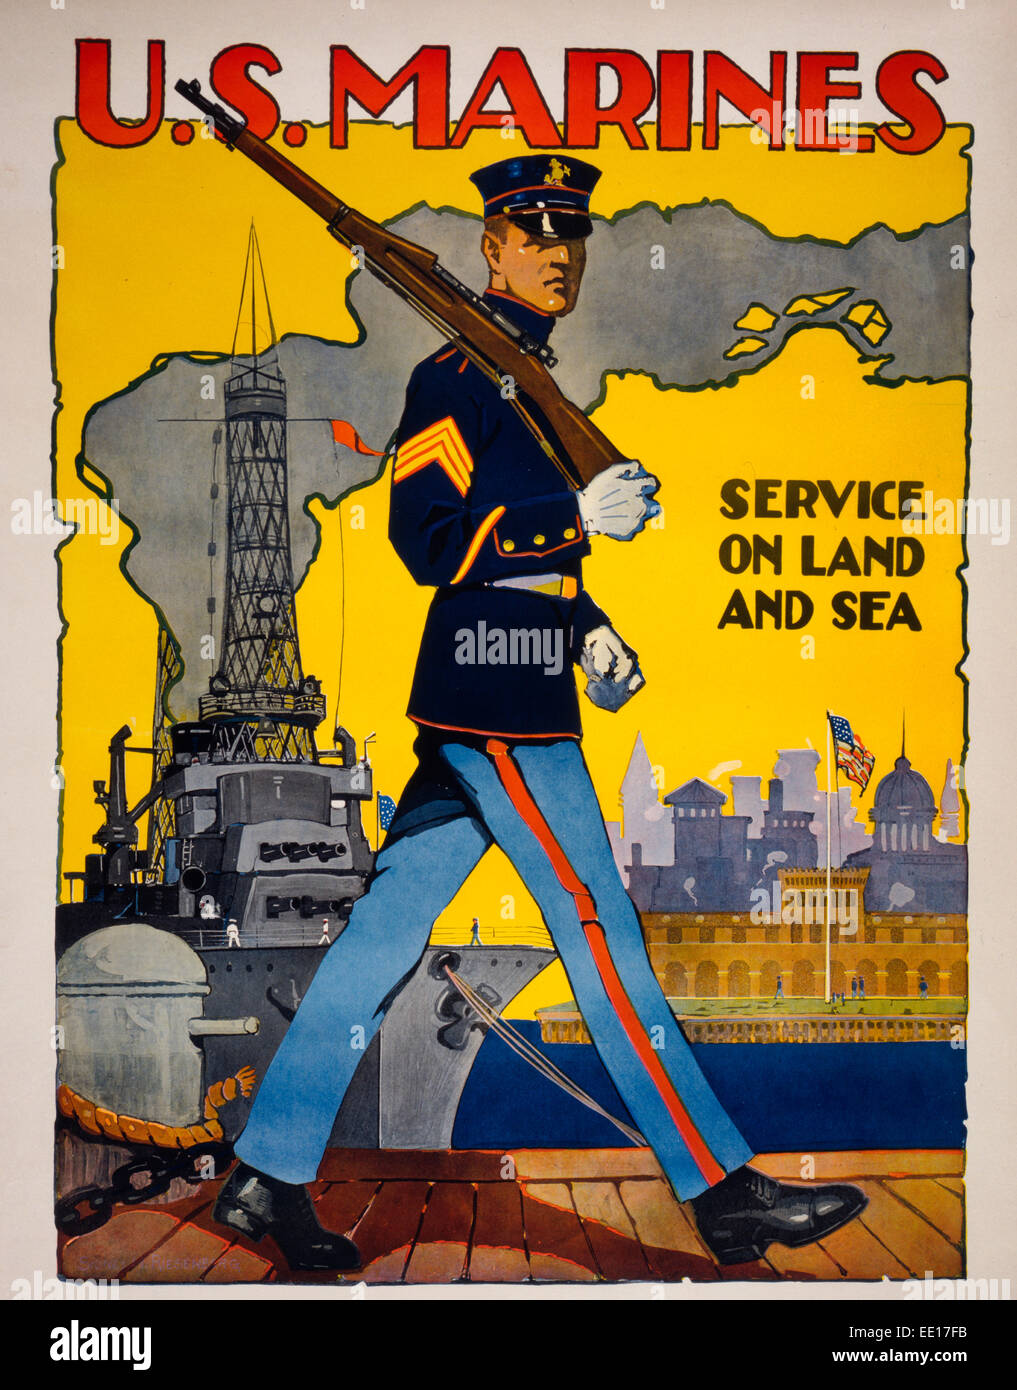 us marine corps service on land and sea recruiting poster showing a marine in